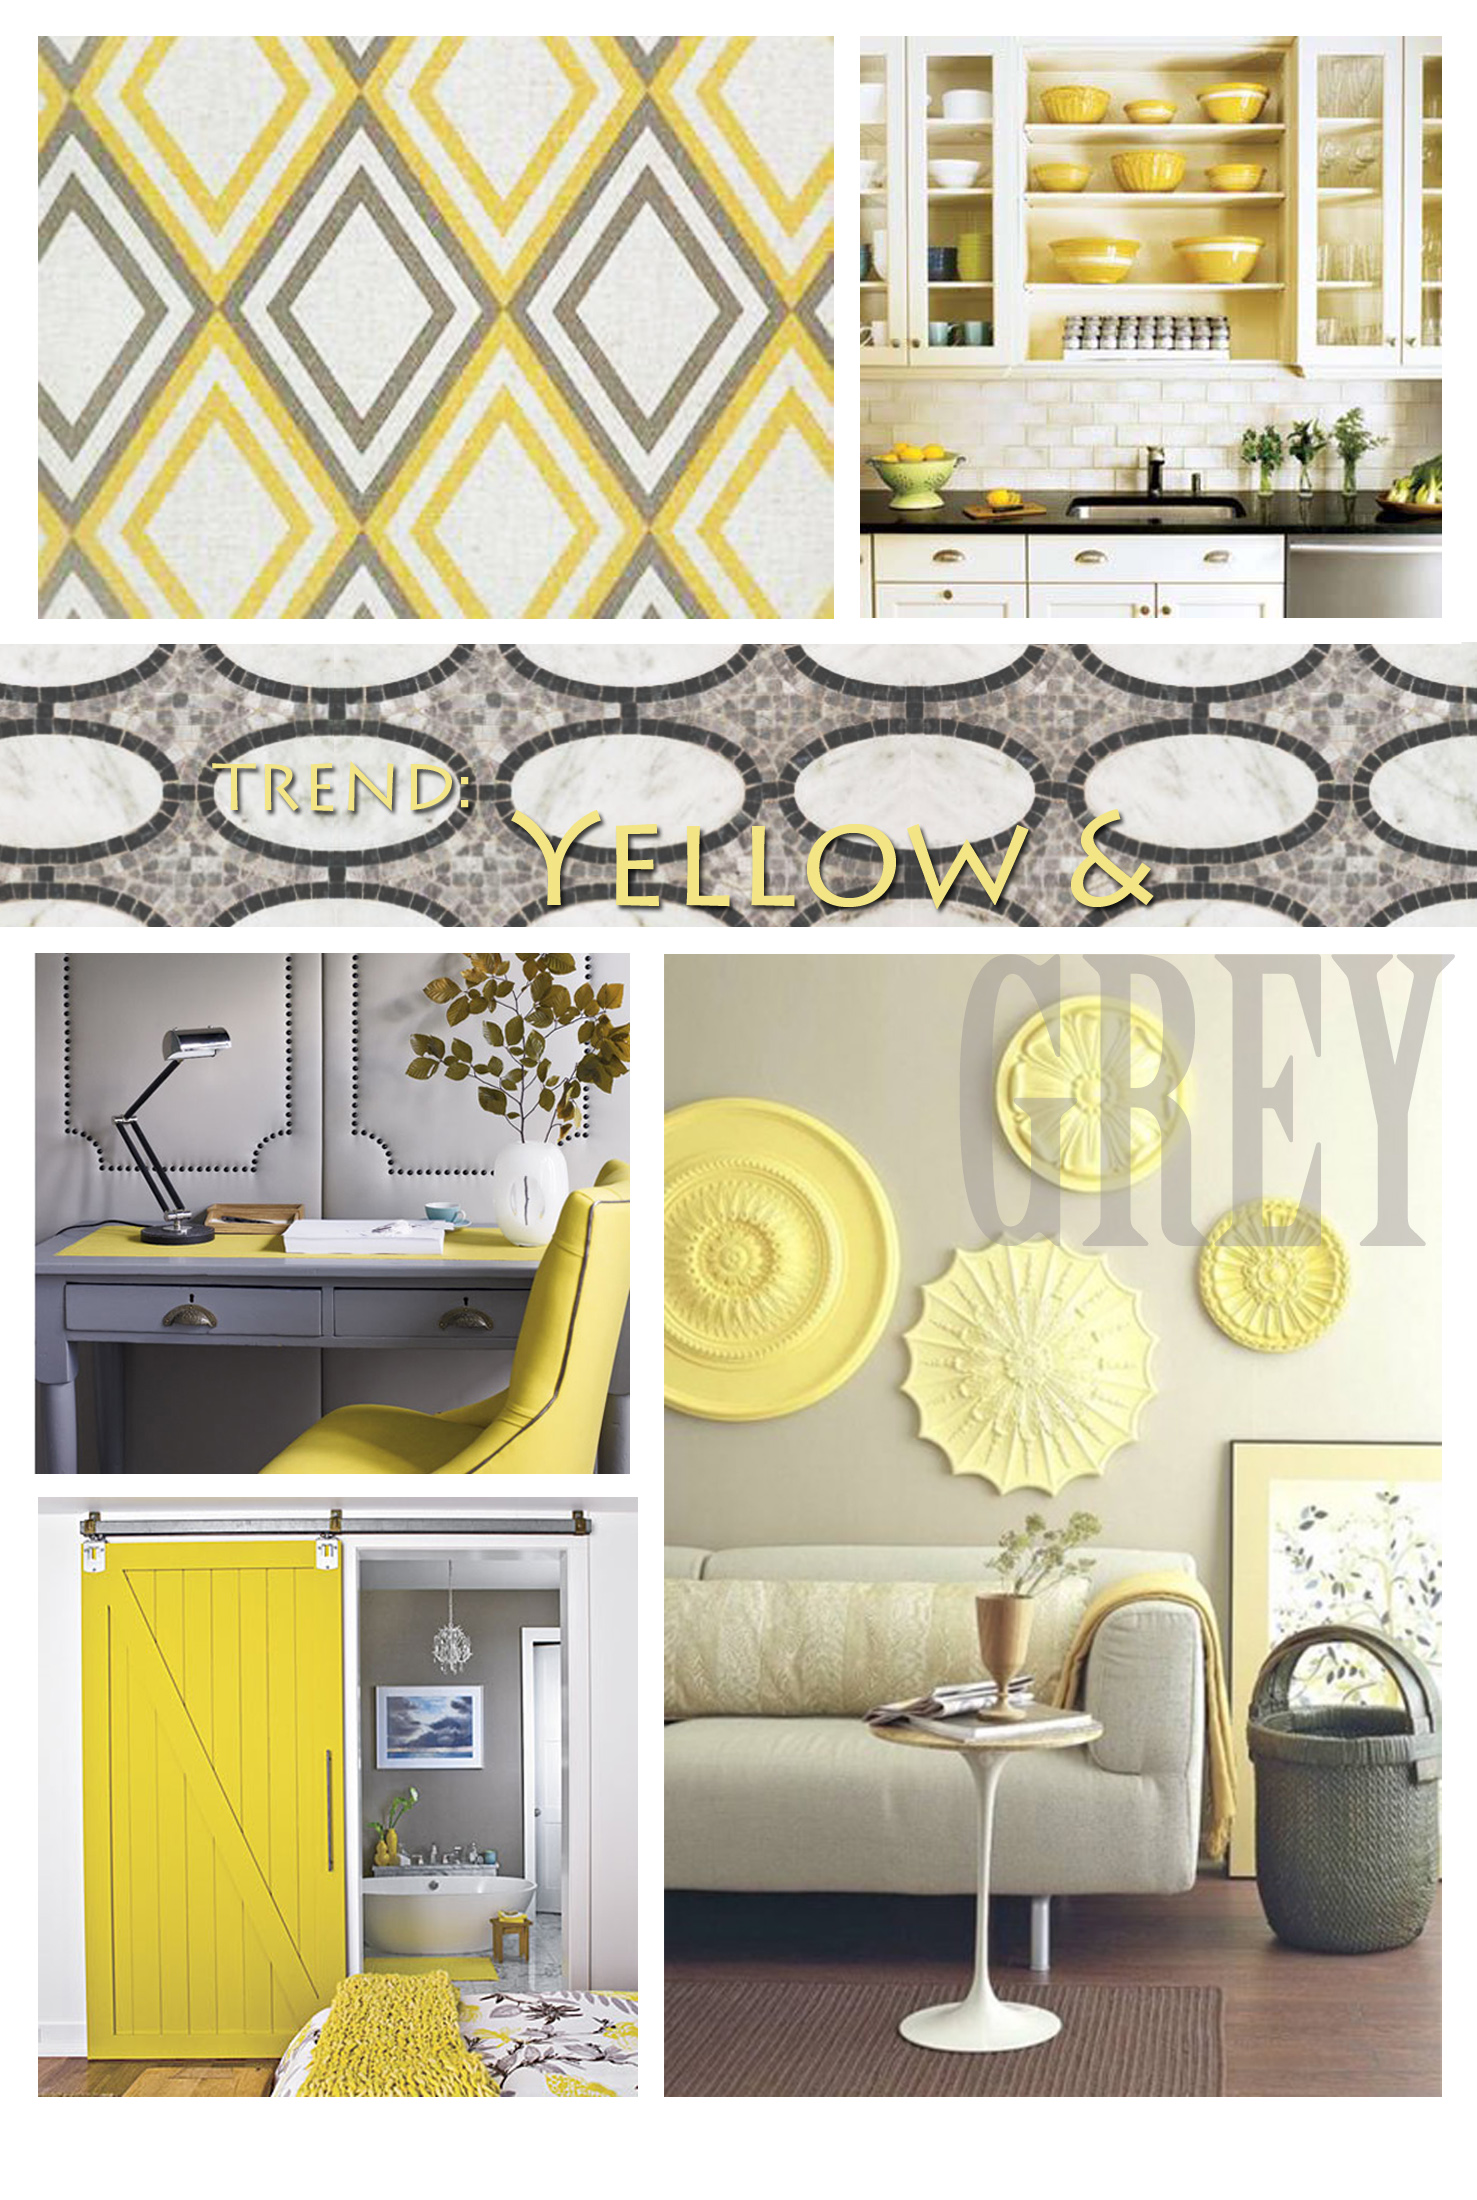 Trend yellow and grey apartments i like blog - Grey and yellow room ...